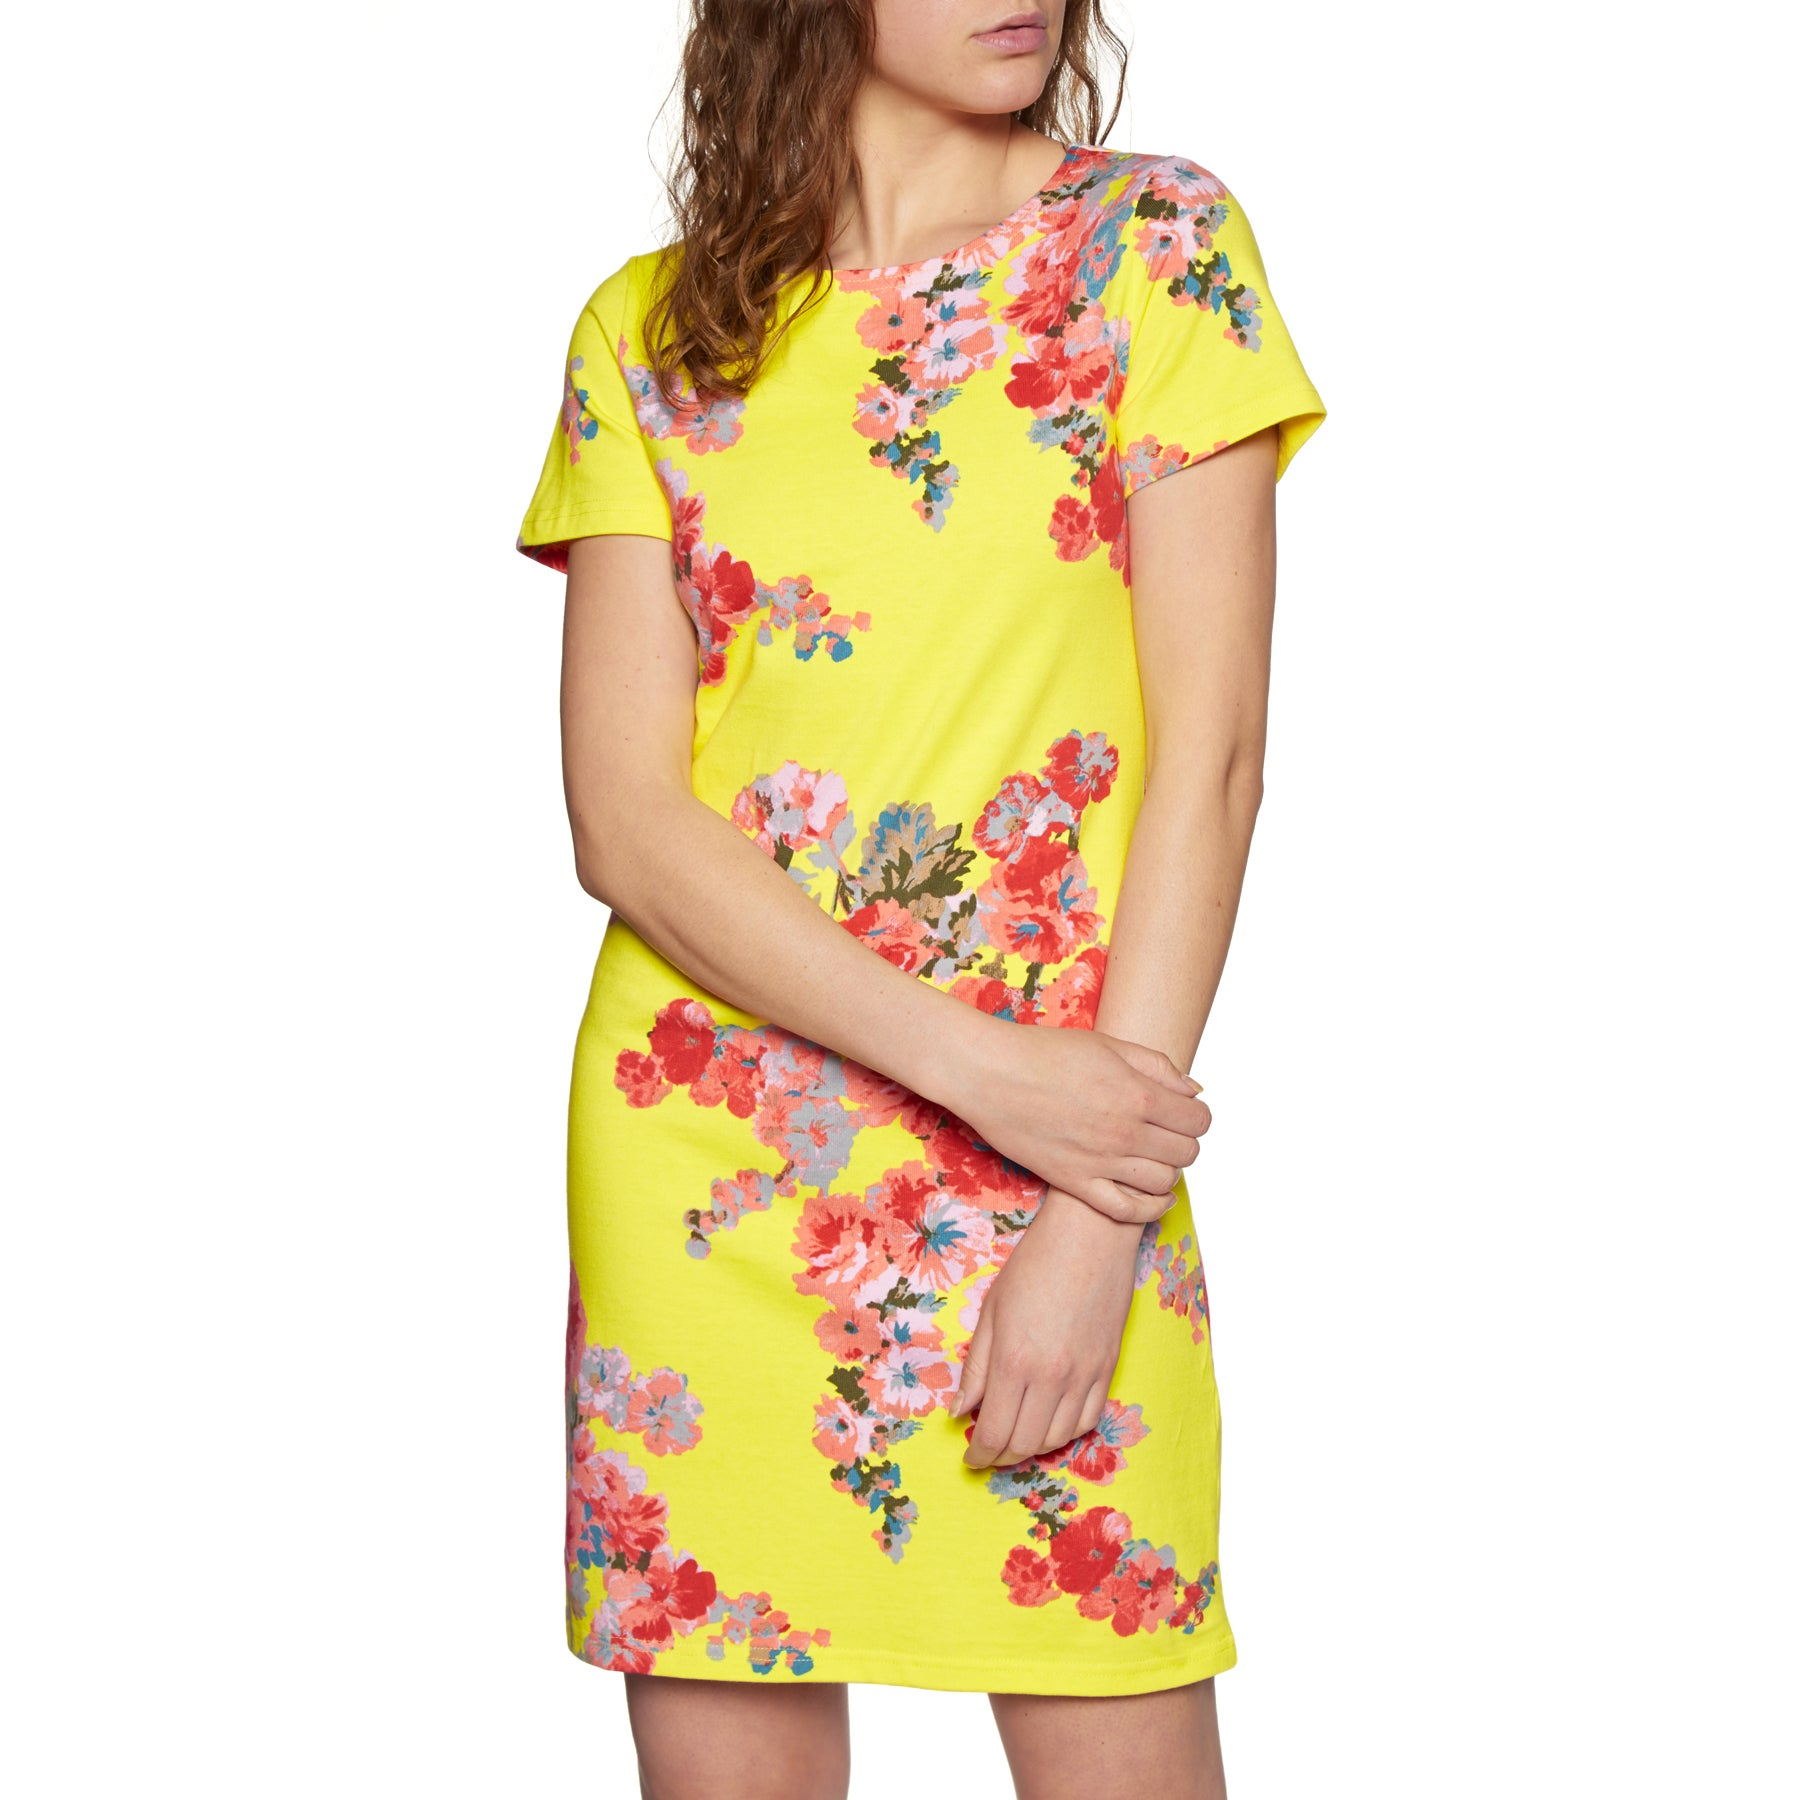 Joules Riviera Short Sleeve Jersey Print Dress - Lemon Floral